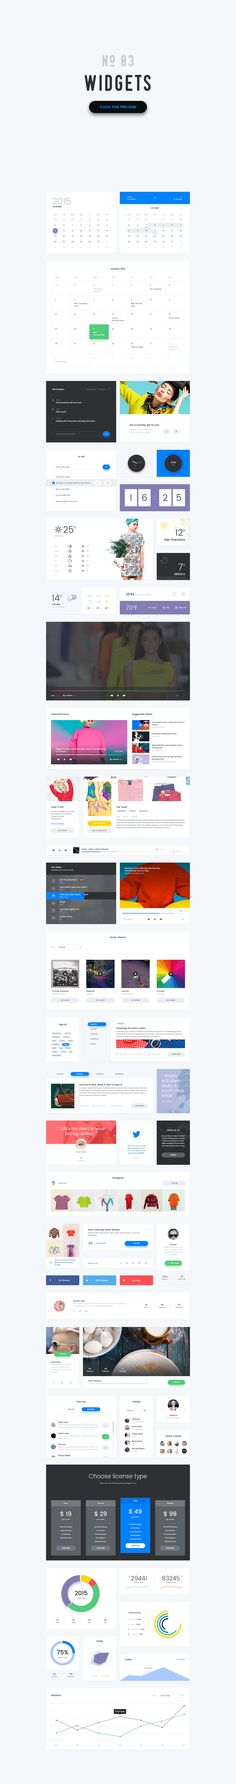 Vivid - Soft Material UI Kit by The UI Shop on Creative Market